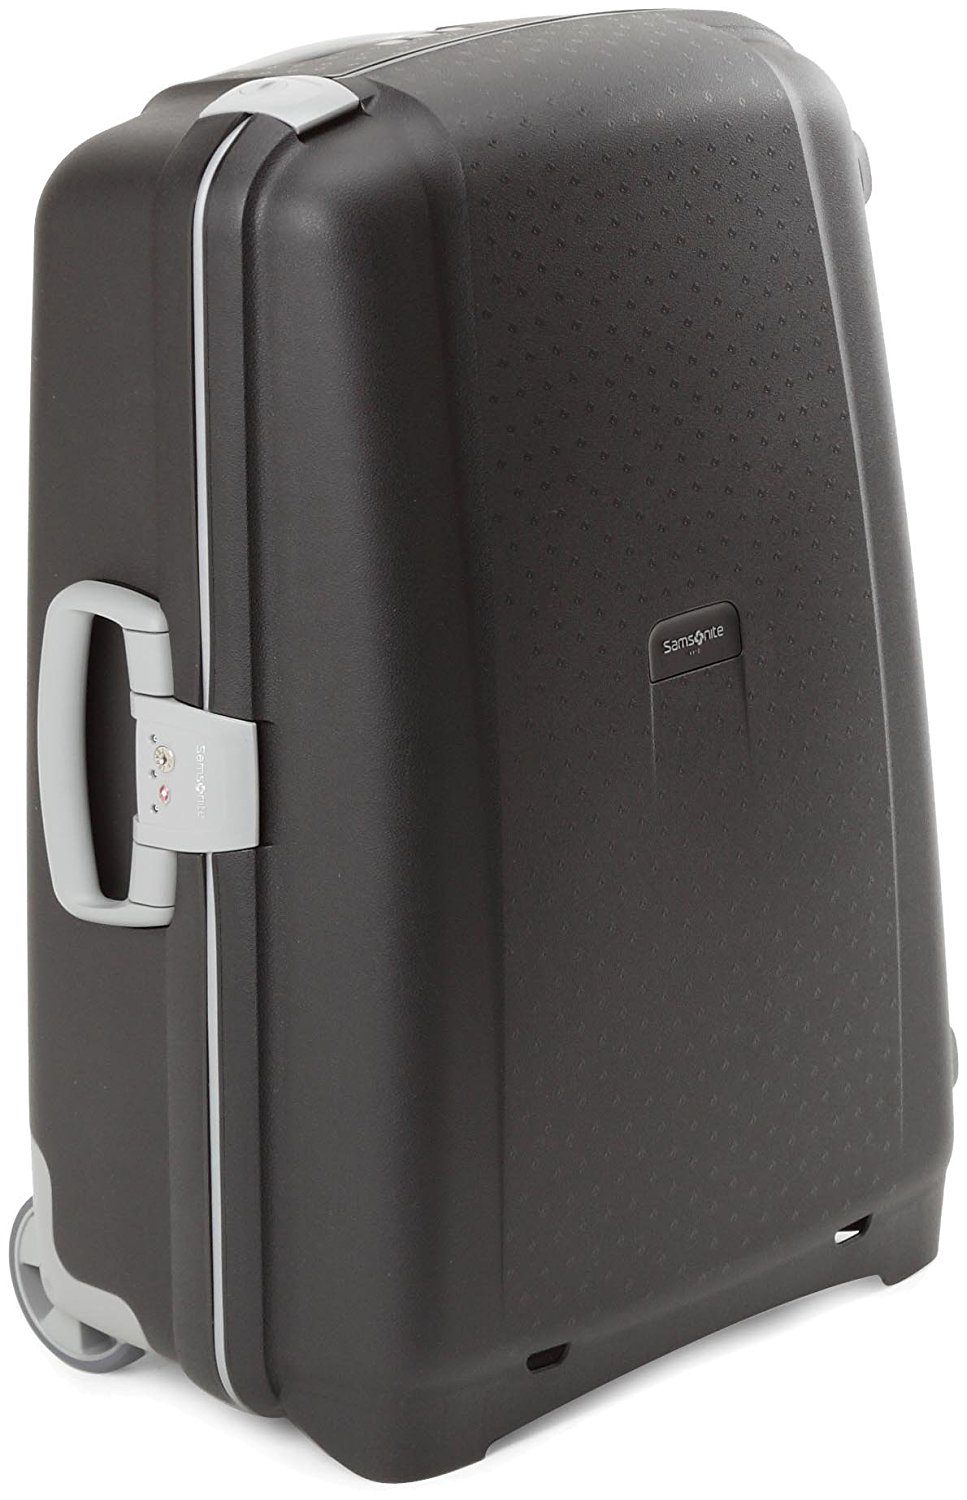 Samsonite Aeris Upright 64 cm, schwarz